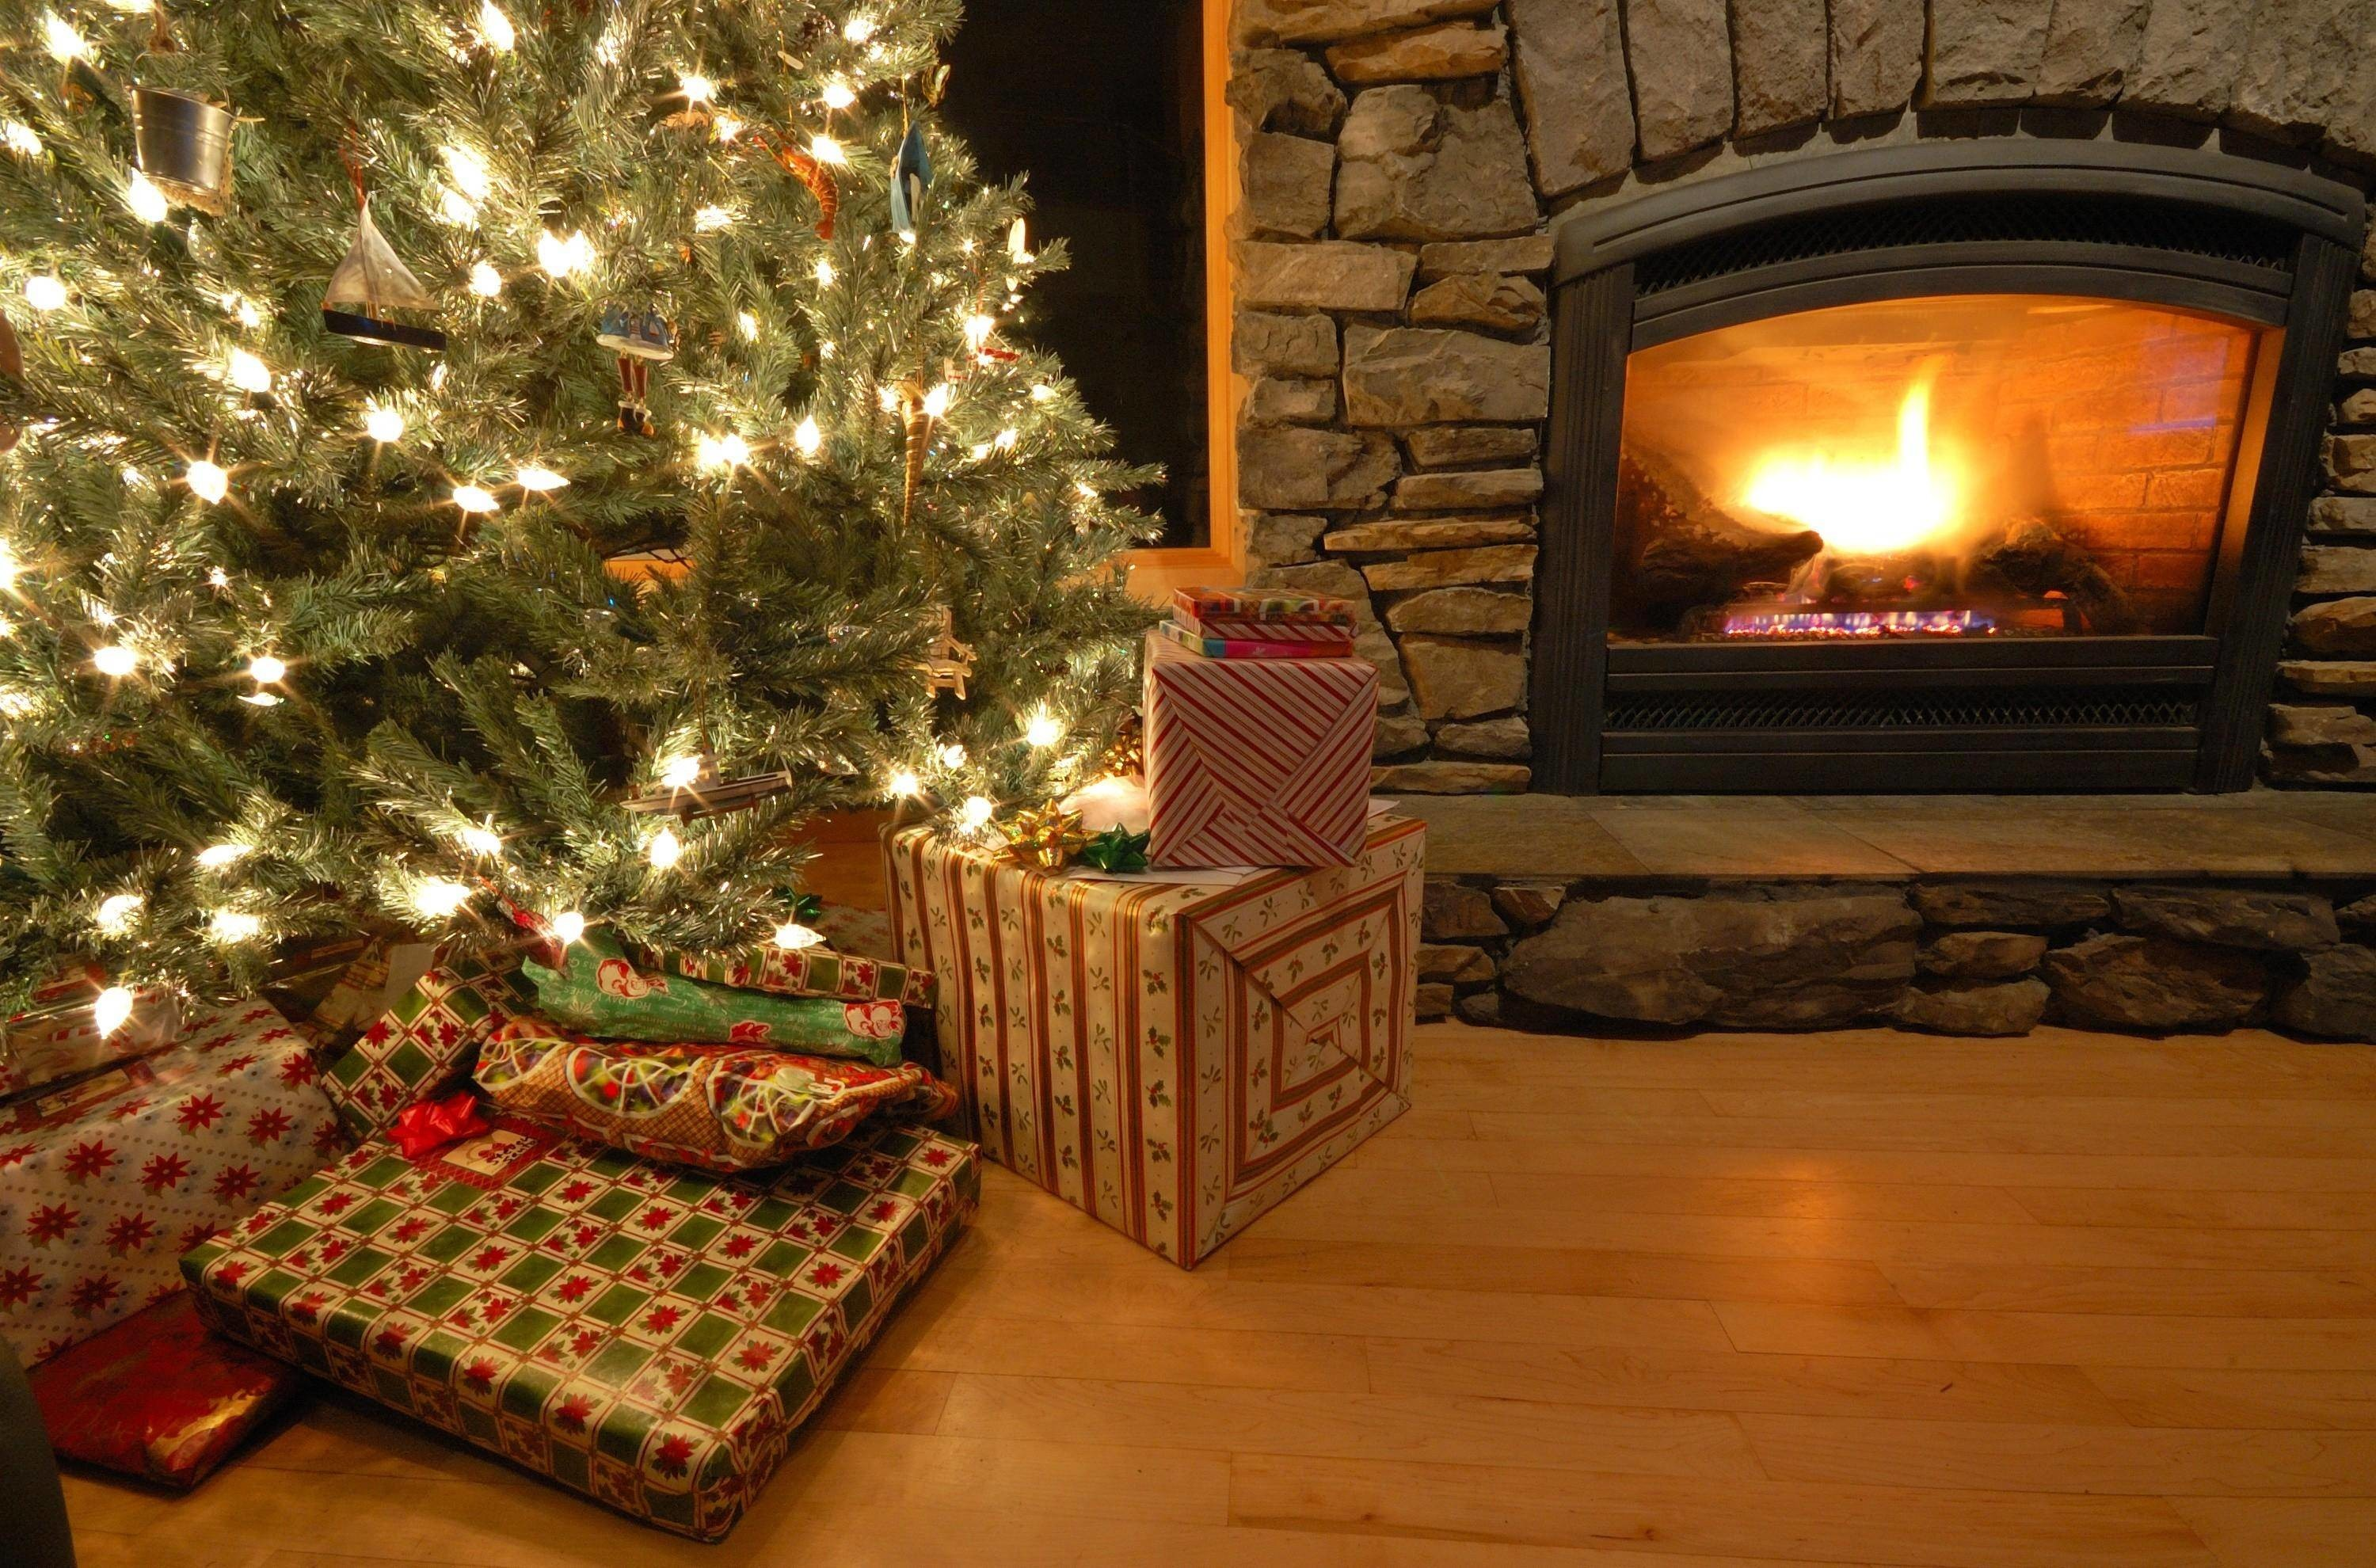 Xmas Stuff For > Christmas Tree And Fireplace Background